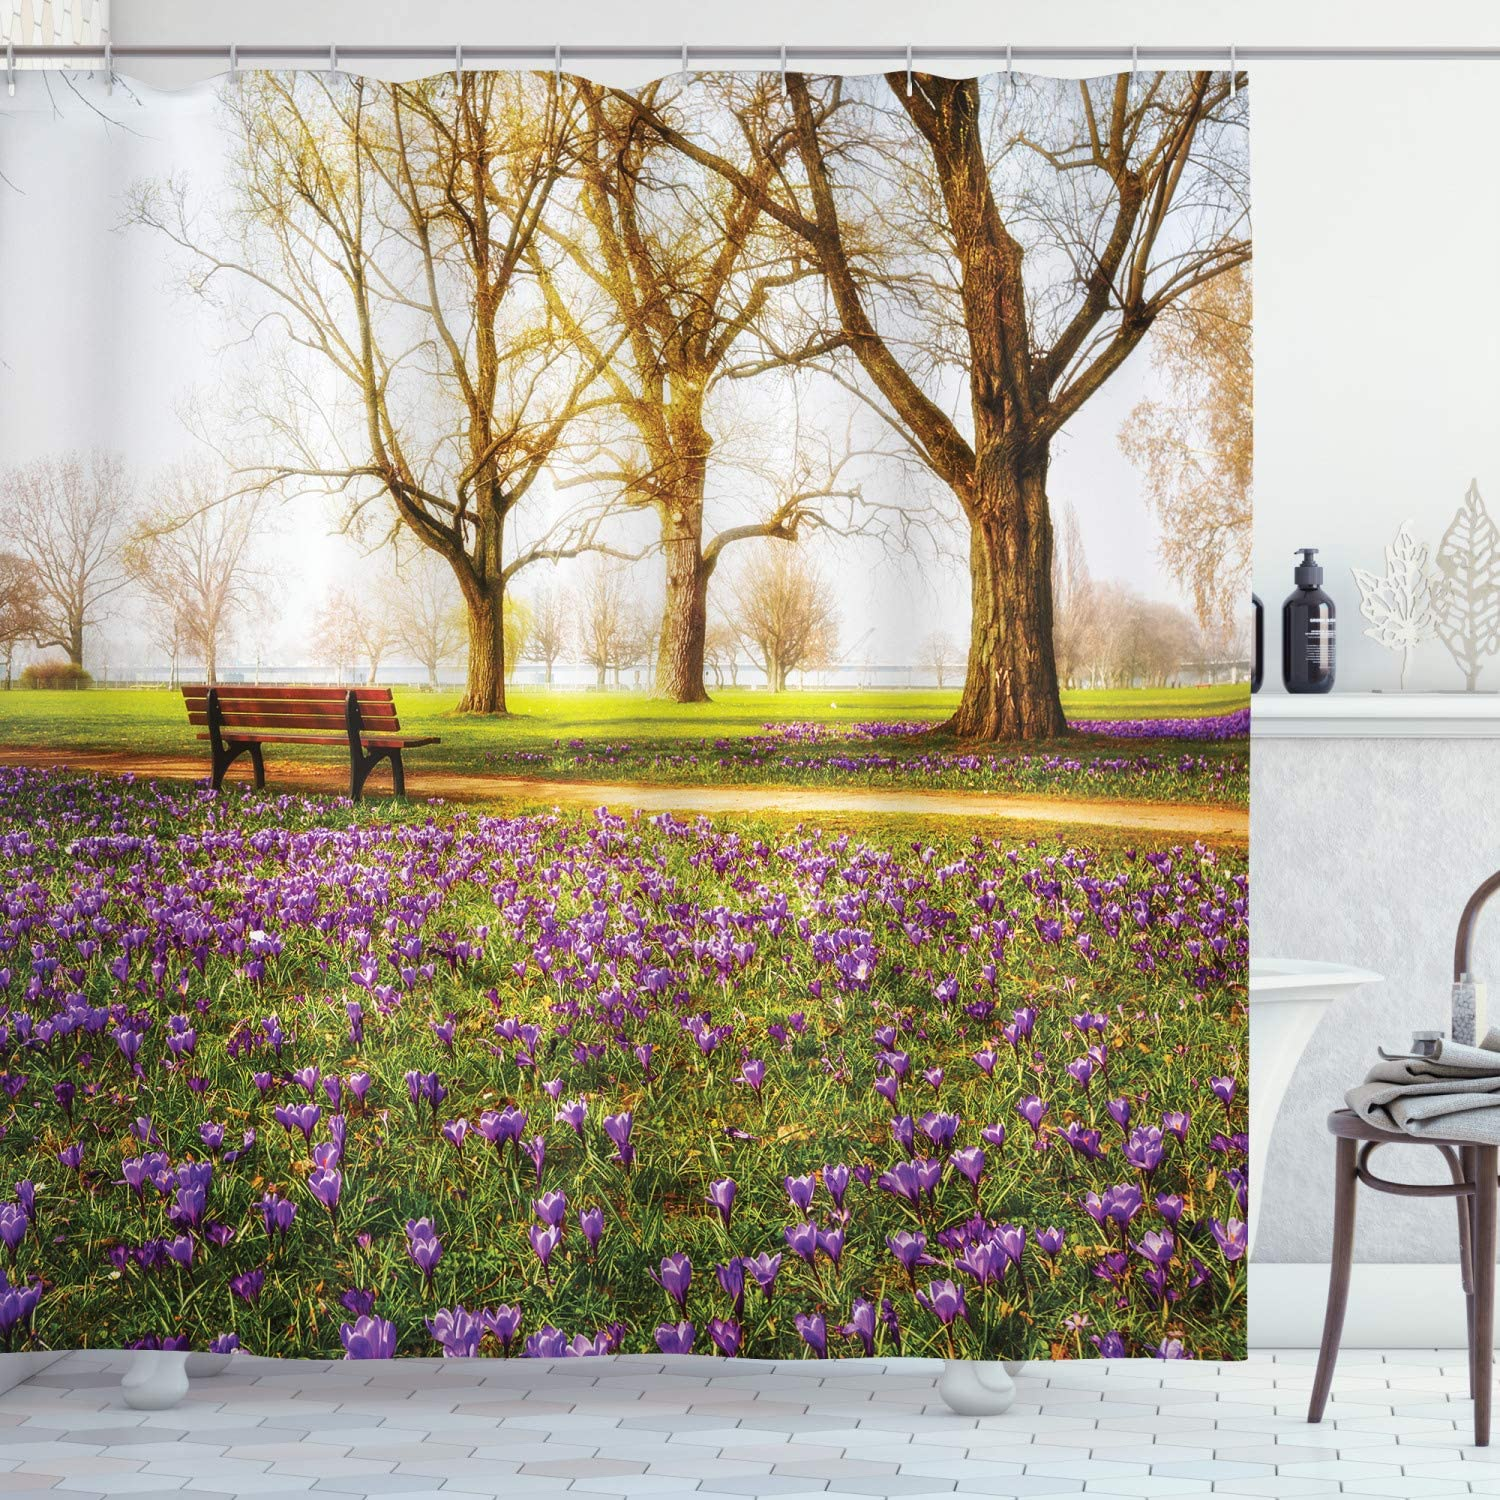 Ambesonne Nature Shower Curtain, Violet Blooming Crocus Flowers in The Park with Trees and Benches Calm Print, Cloth Fabric Bathroom Decor Set with Hooks, 84